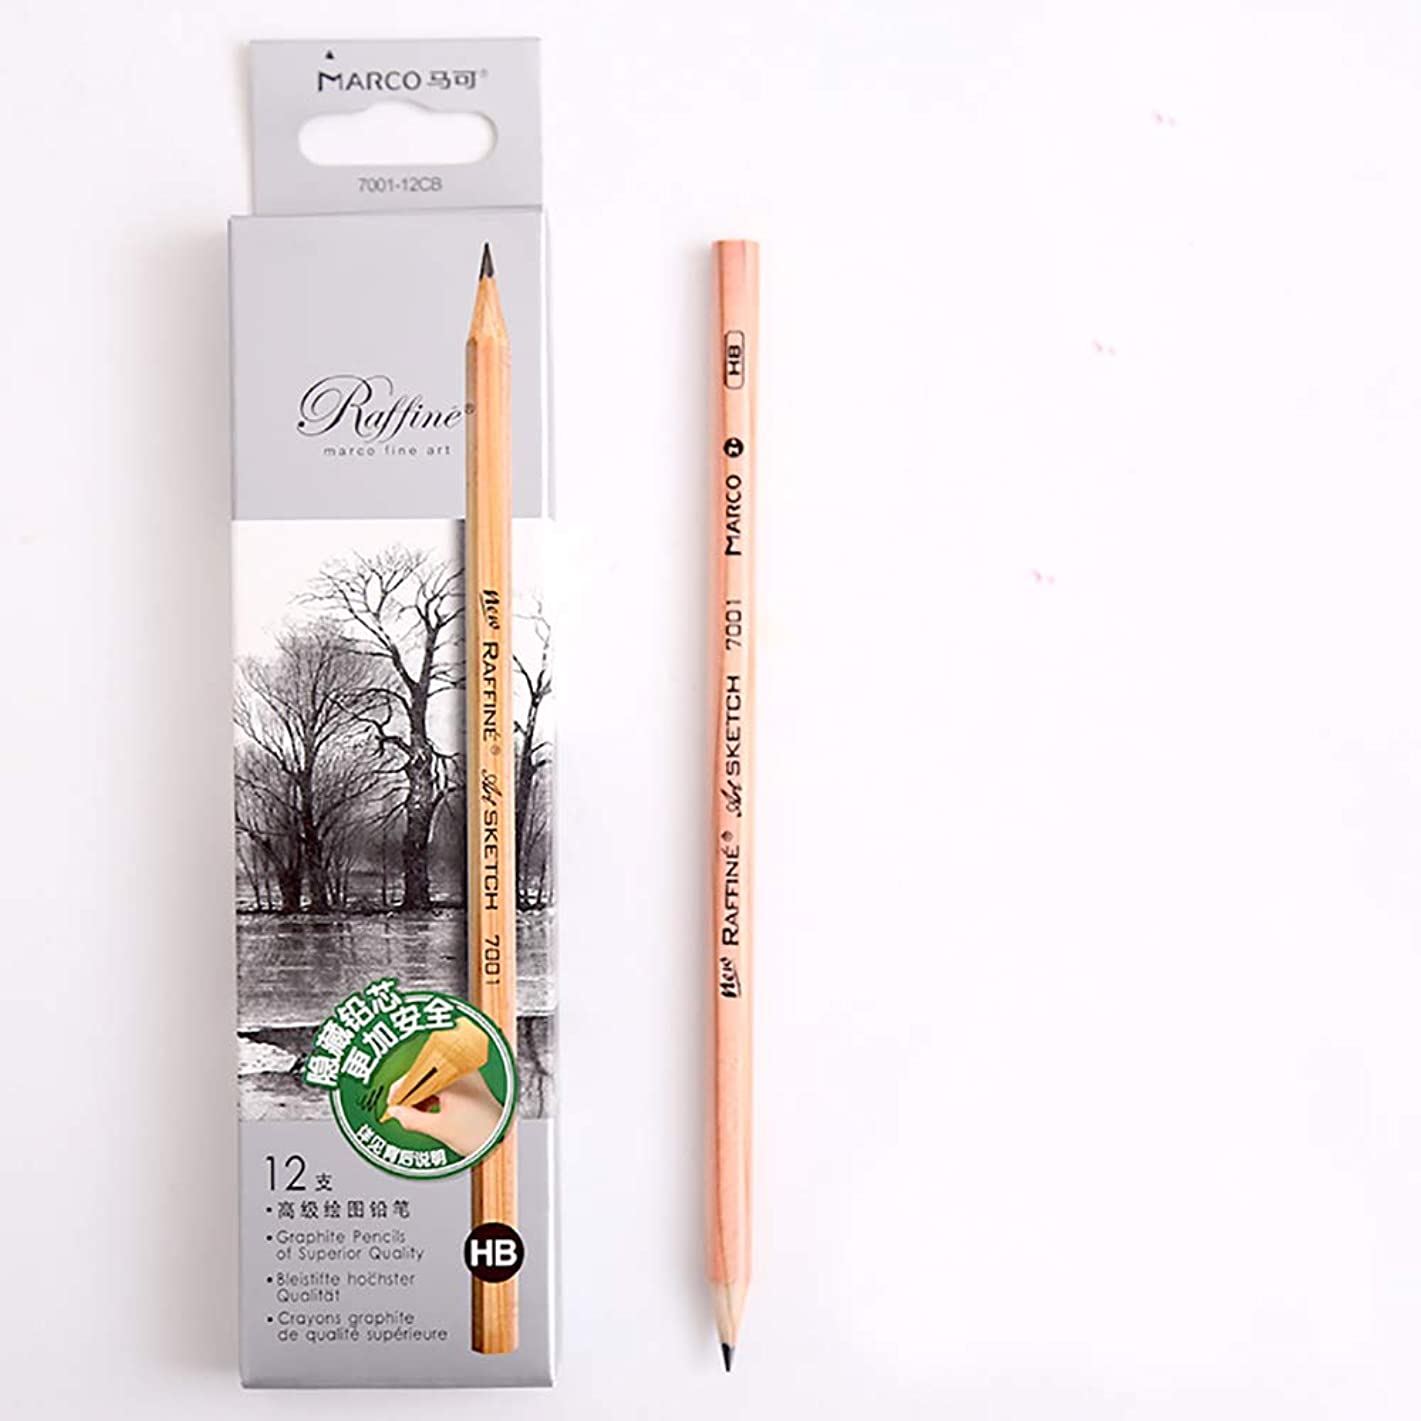 Sketch Pencil Log Pencil Drawing Pencil Art Pencils Sketch Travel Precision Graphite Pencils for Adults 12 Piece (HB)